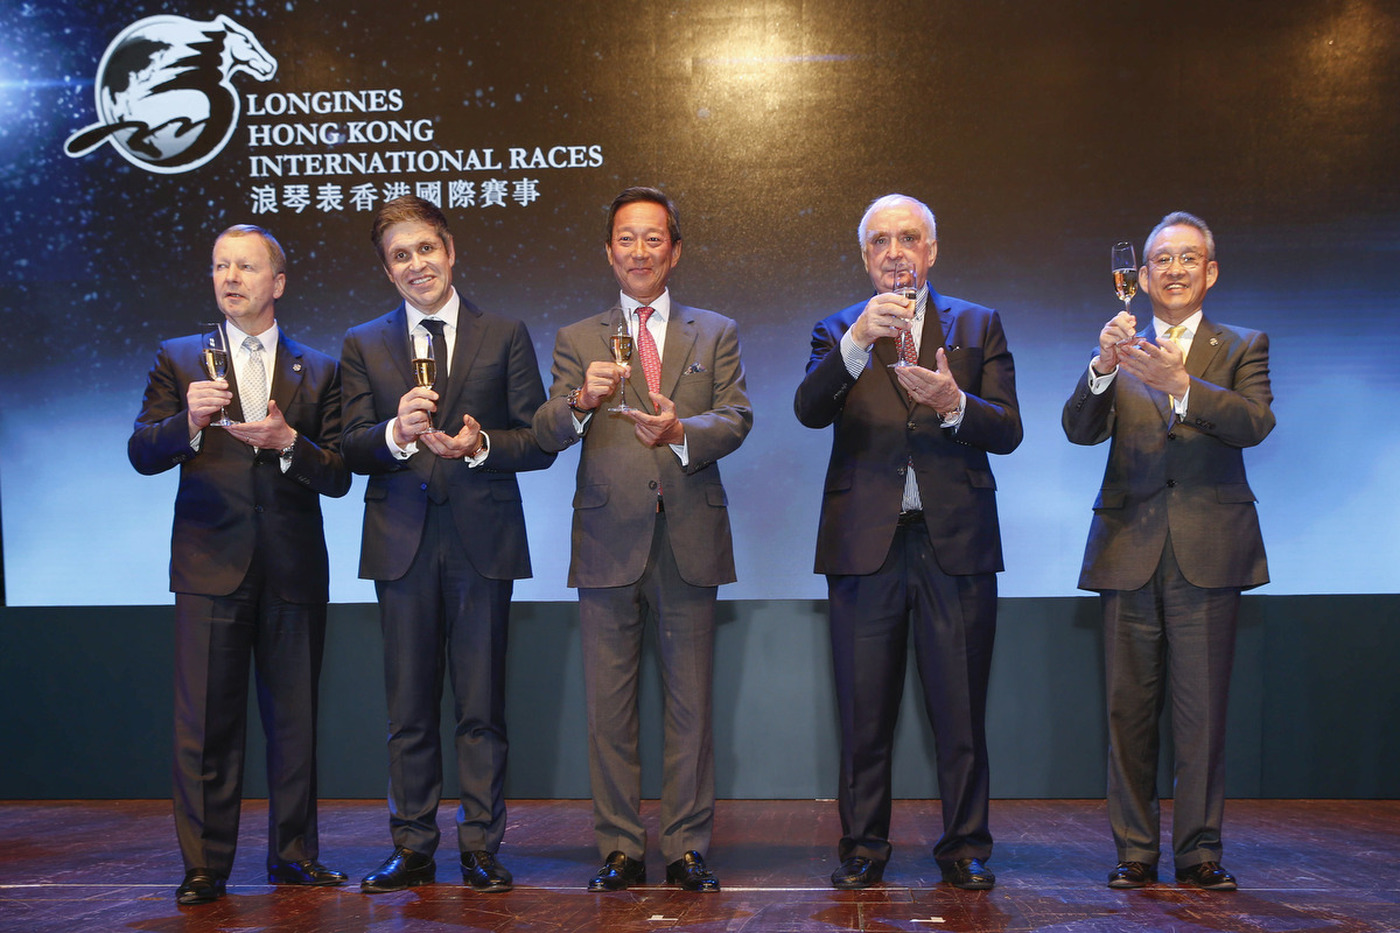 Longines Flat Racing Event: Ryan Moore crowned Longines World's Best Jockey 2014 at the Longines Hong Kong International Races Gala Dinner  1